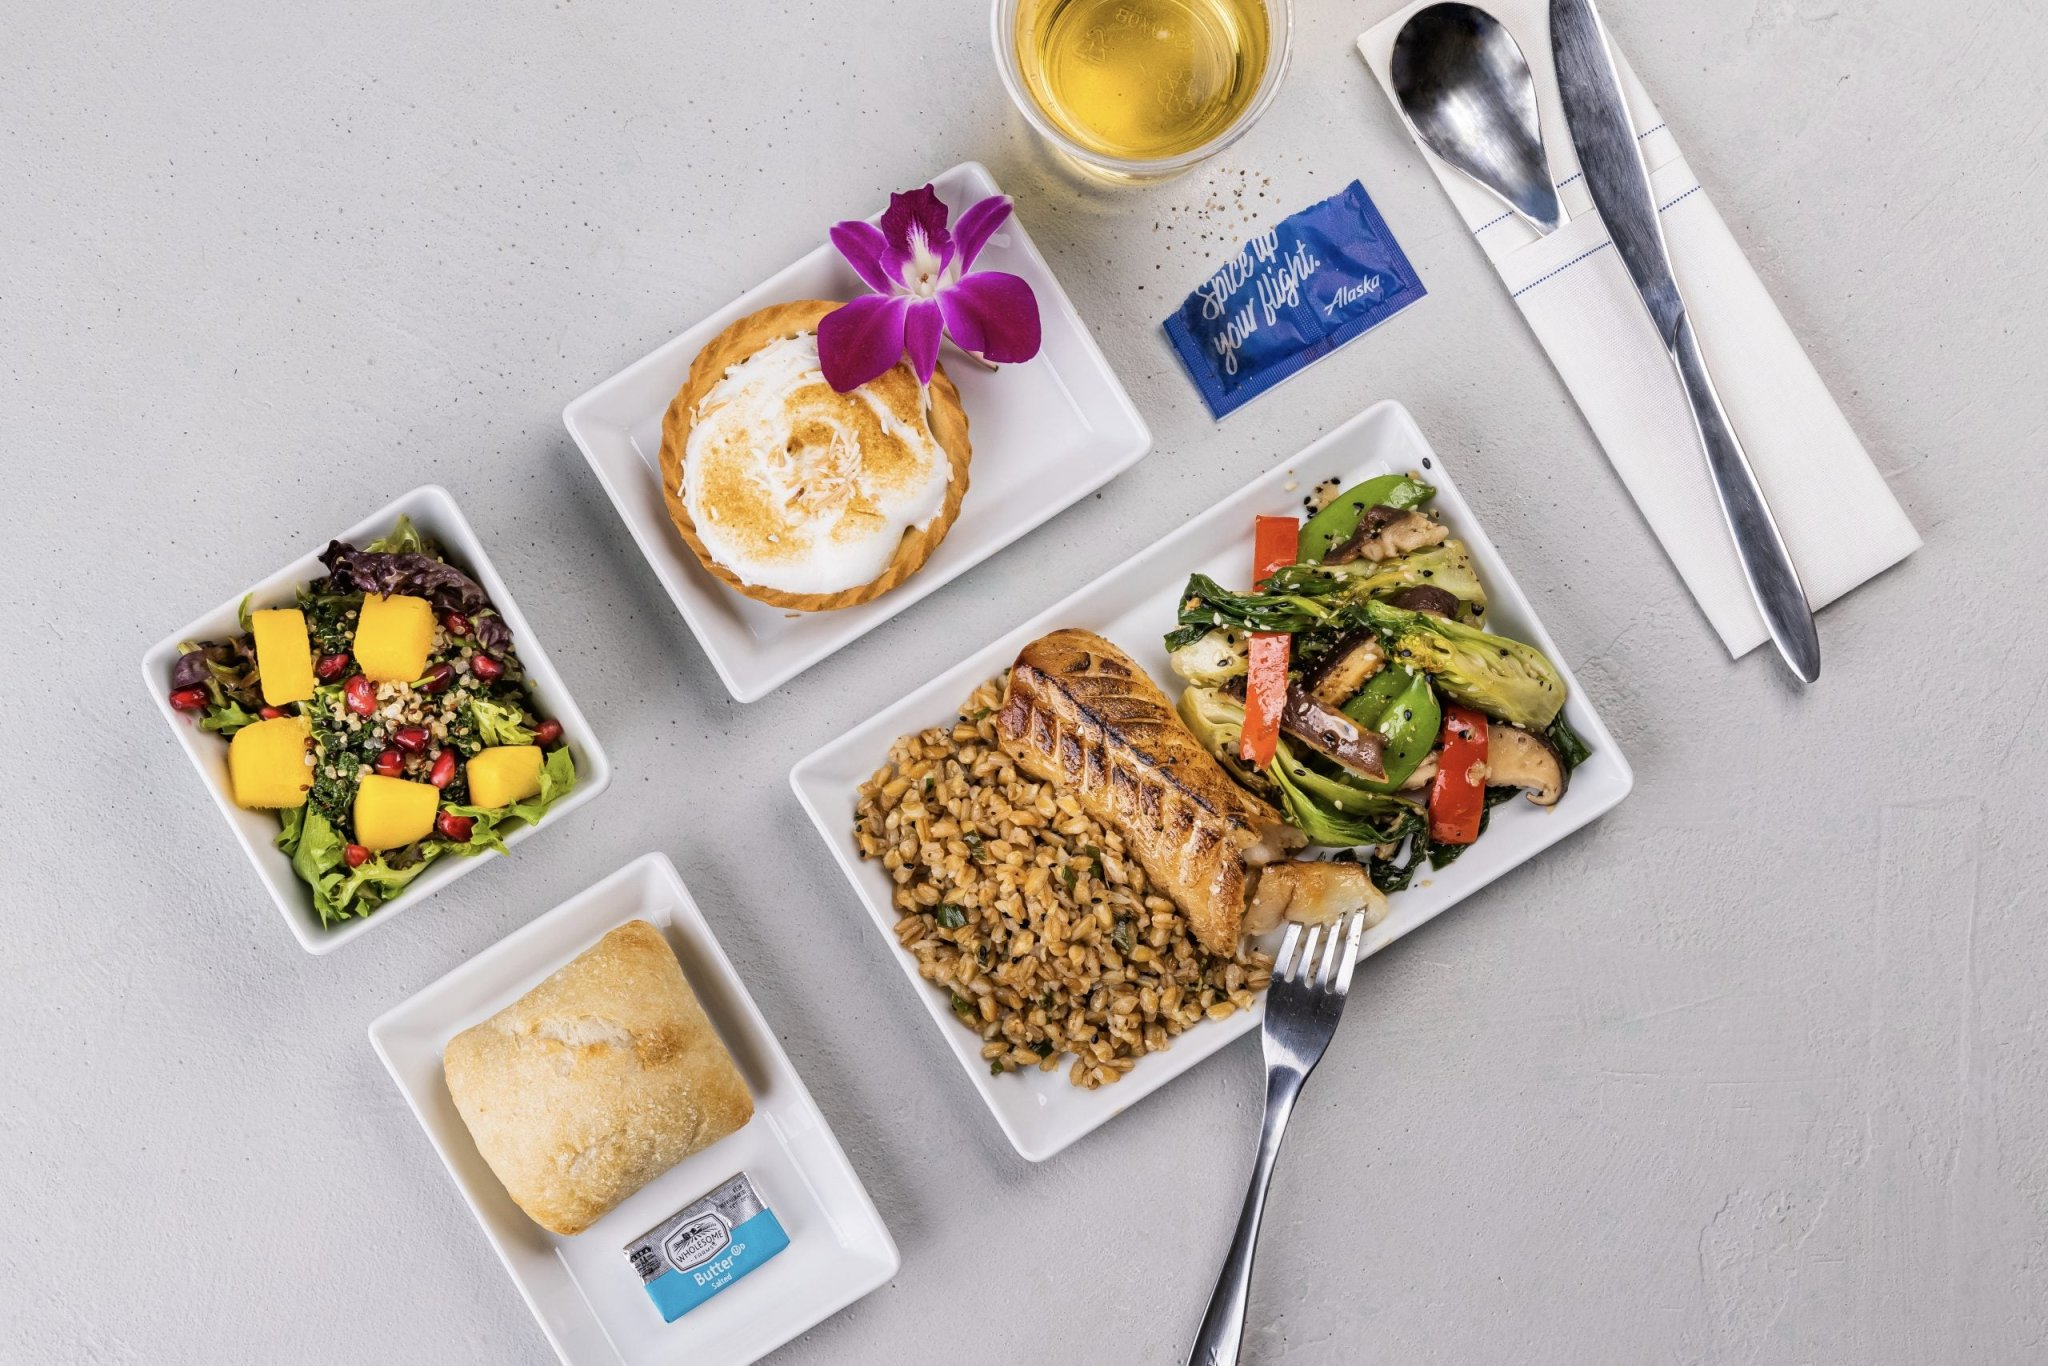 Inflight service is back — here's what food and drinks you can expect on your next flight